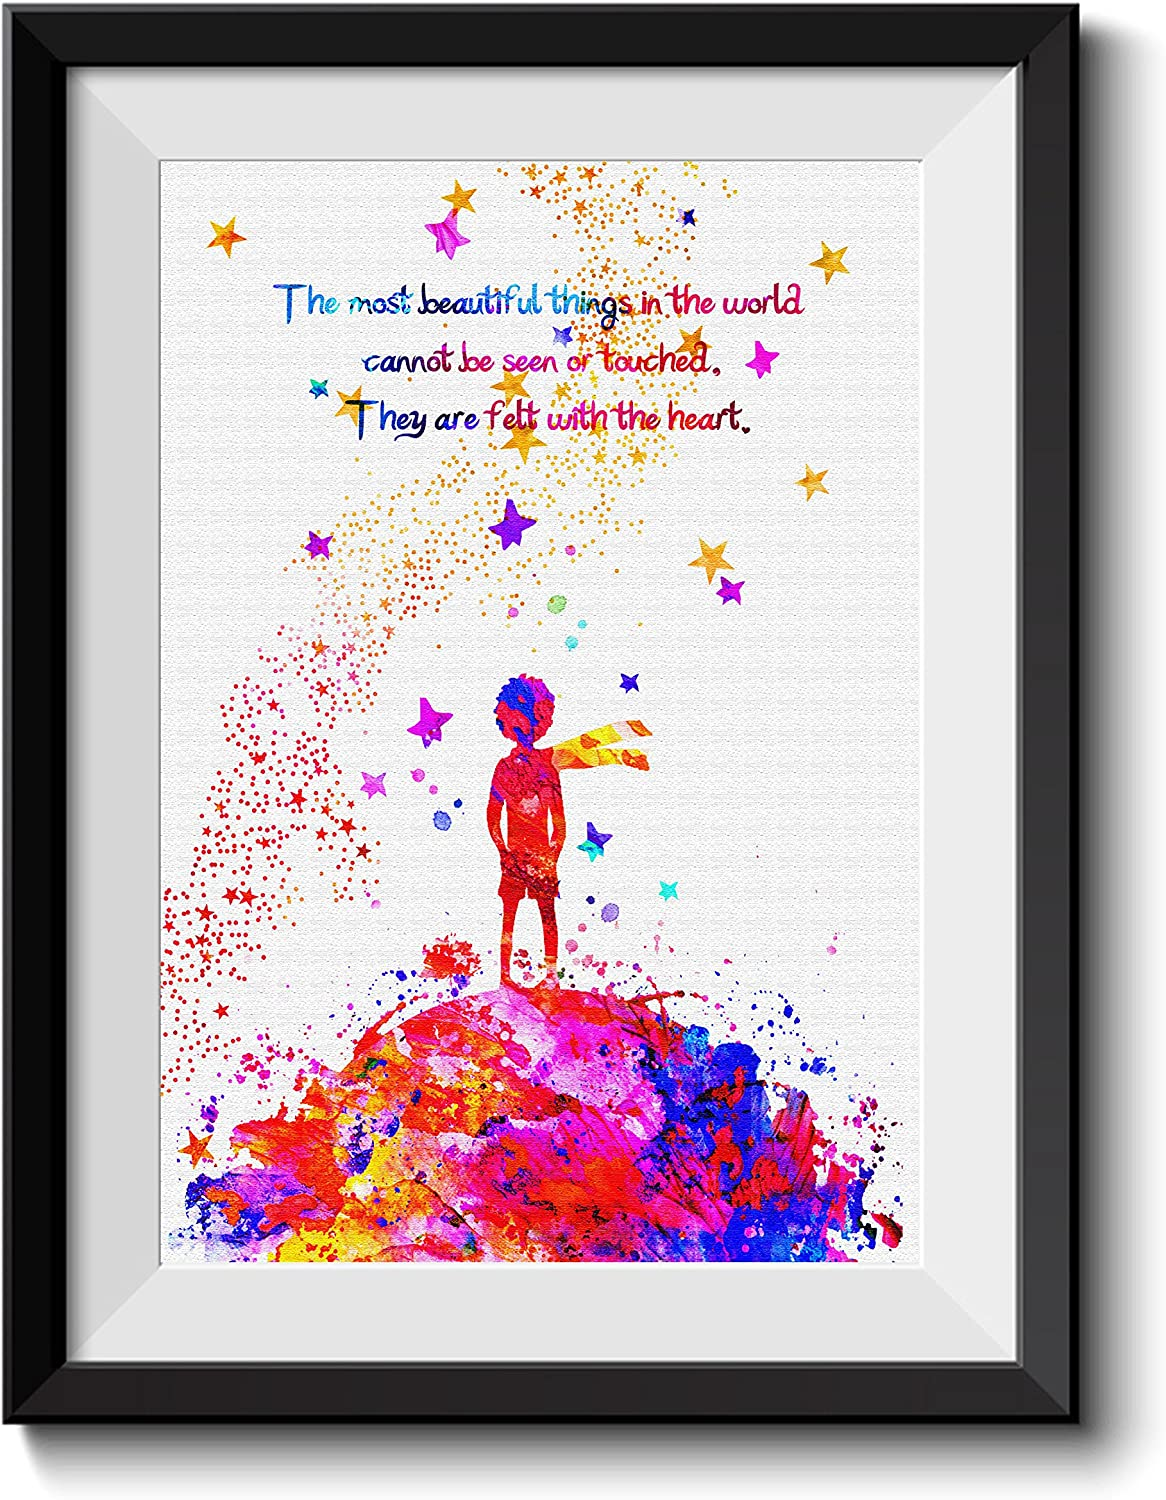 Amazon Com Uhomate The Little Prince Fox Le Petit Prince Little Prince Home Canvas Prints Wall Art Inspirational Quotes Wall Decor Living Room Bedroom Bathroom Artwork C045 8x10 Posters Prints